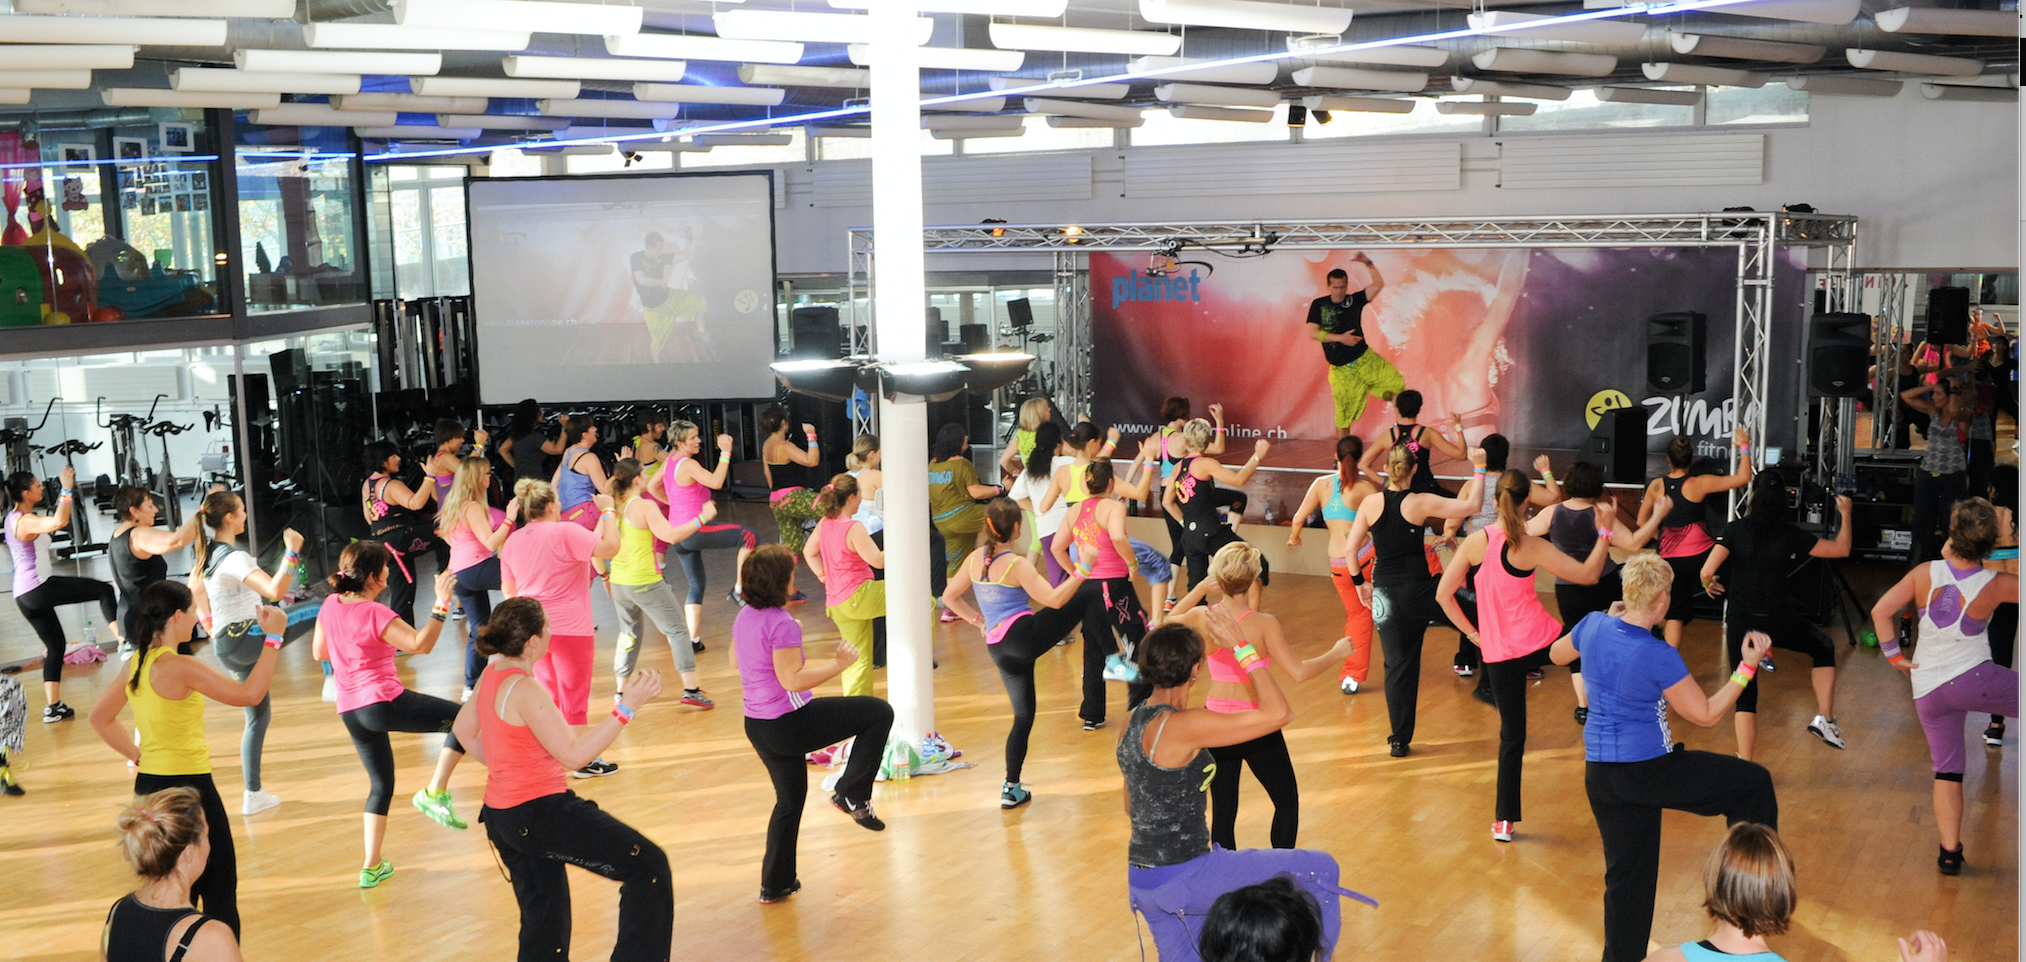 Mumbaikars, Zumba Your Way To Fitness For Just INR 249 At This Awesome Dance Class. Are We Dancing Already?